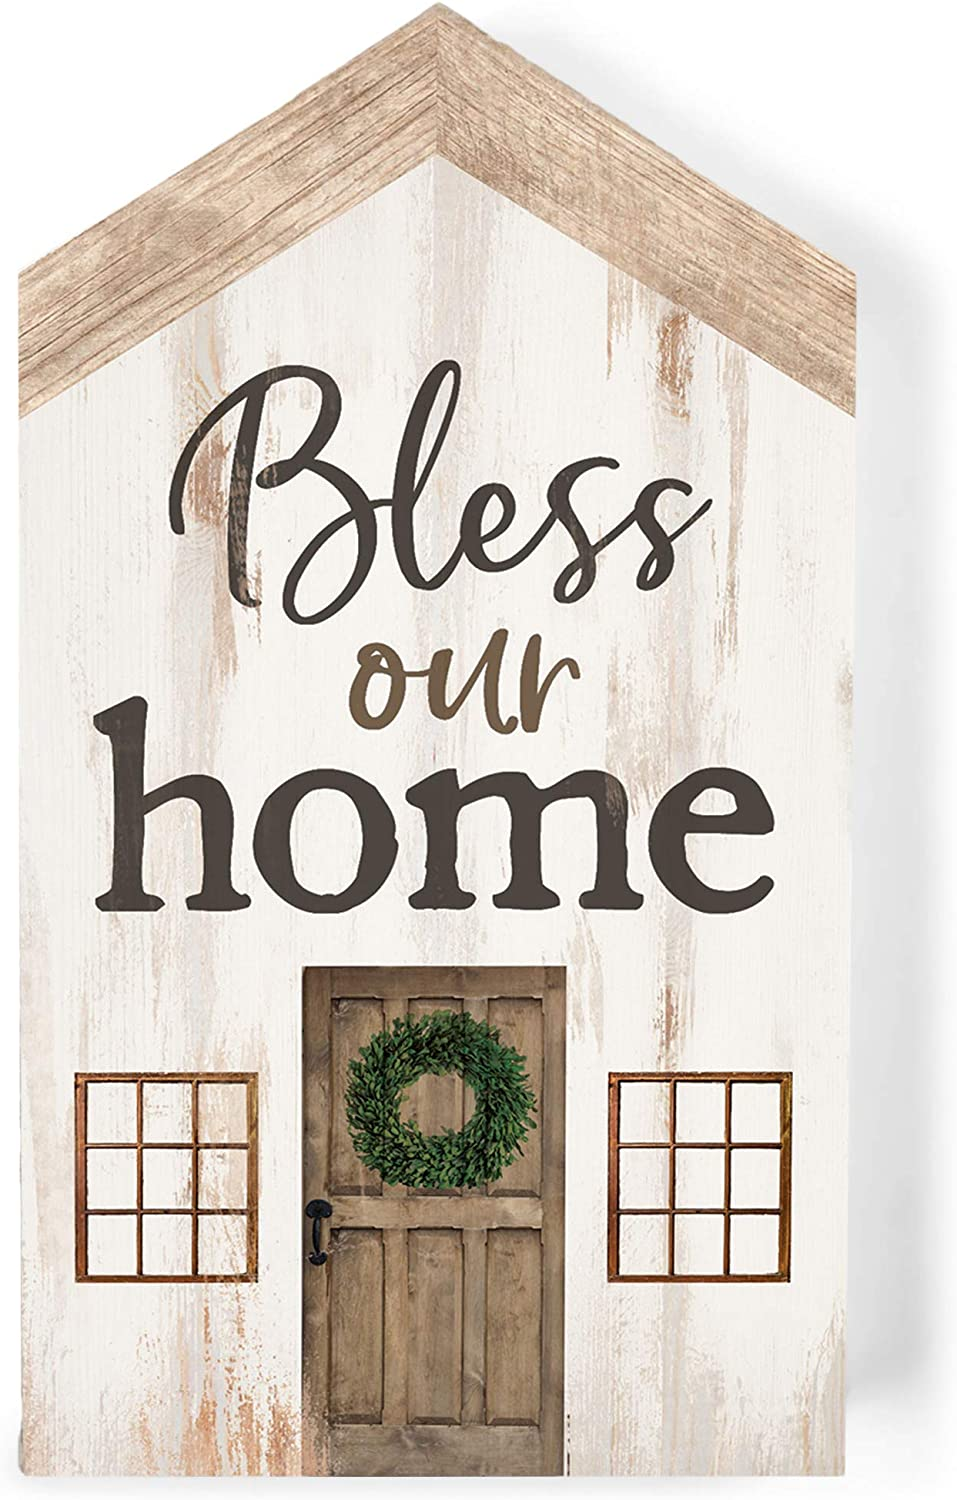 P. Graham Dunn Bless Our Home Whitewash Barn House Shaped 3.5 x 6 Inch Pine Wood Block Tabletop Sign